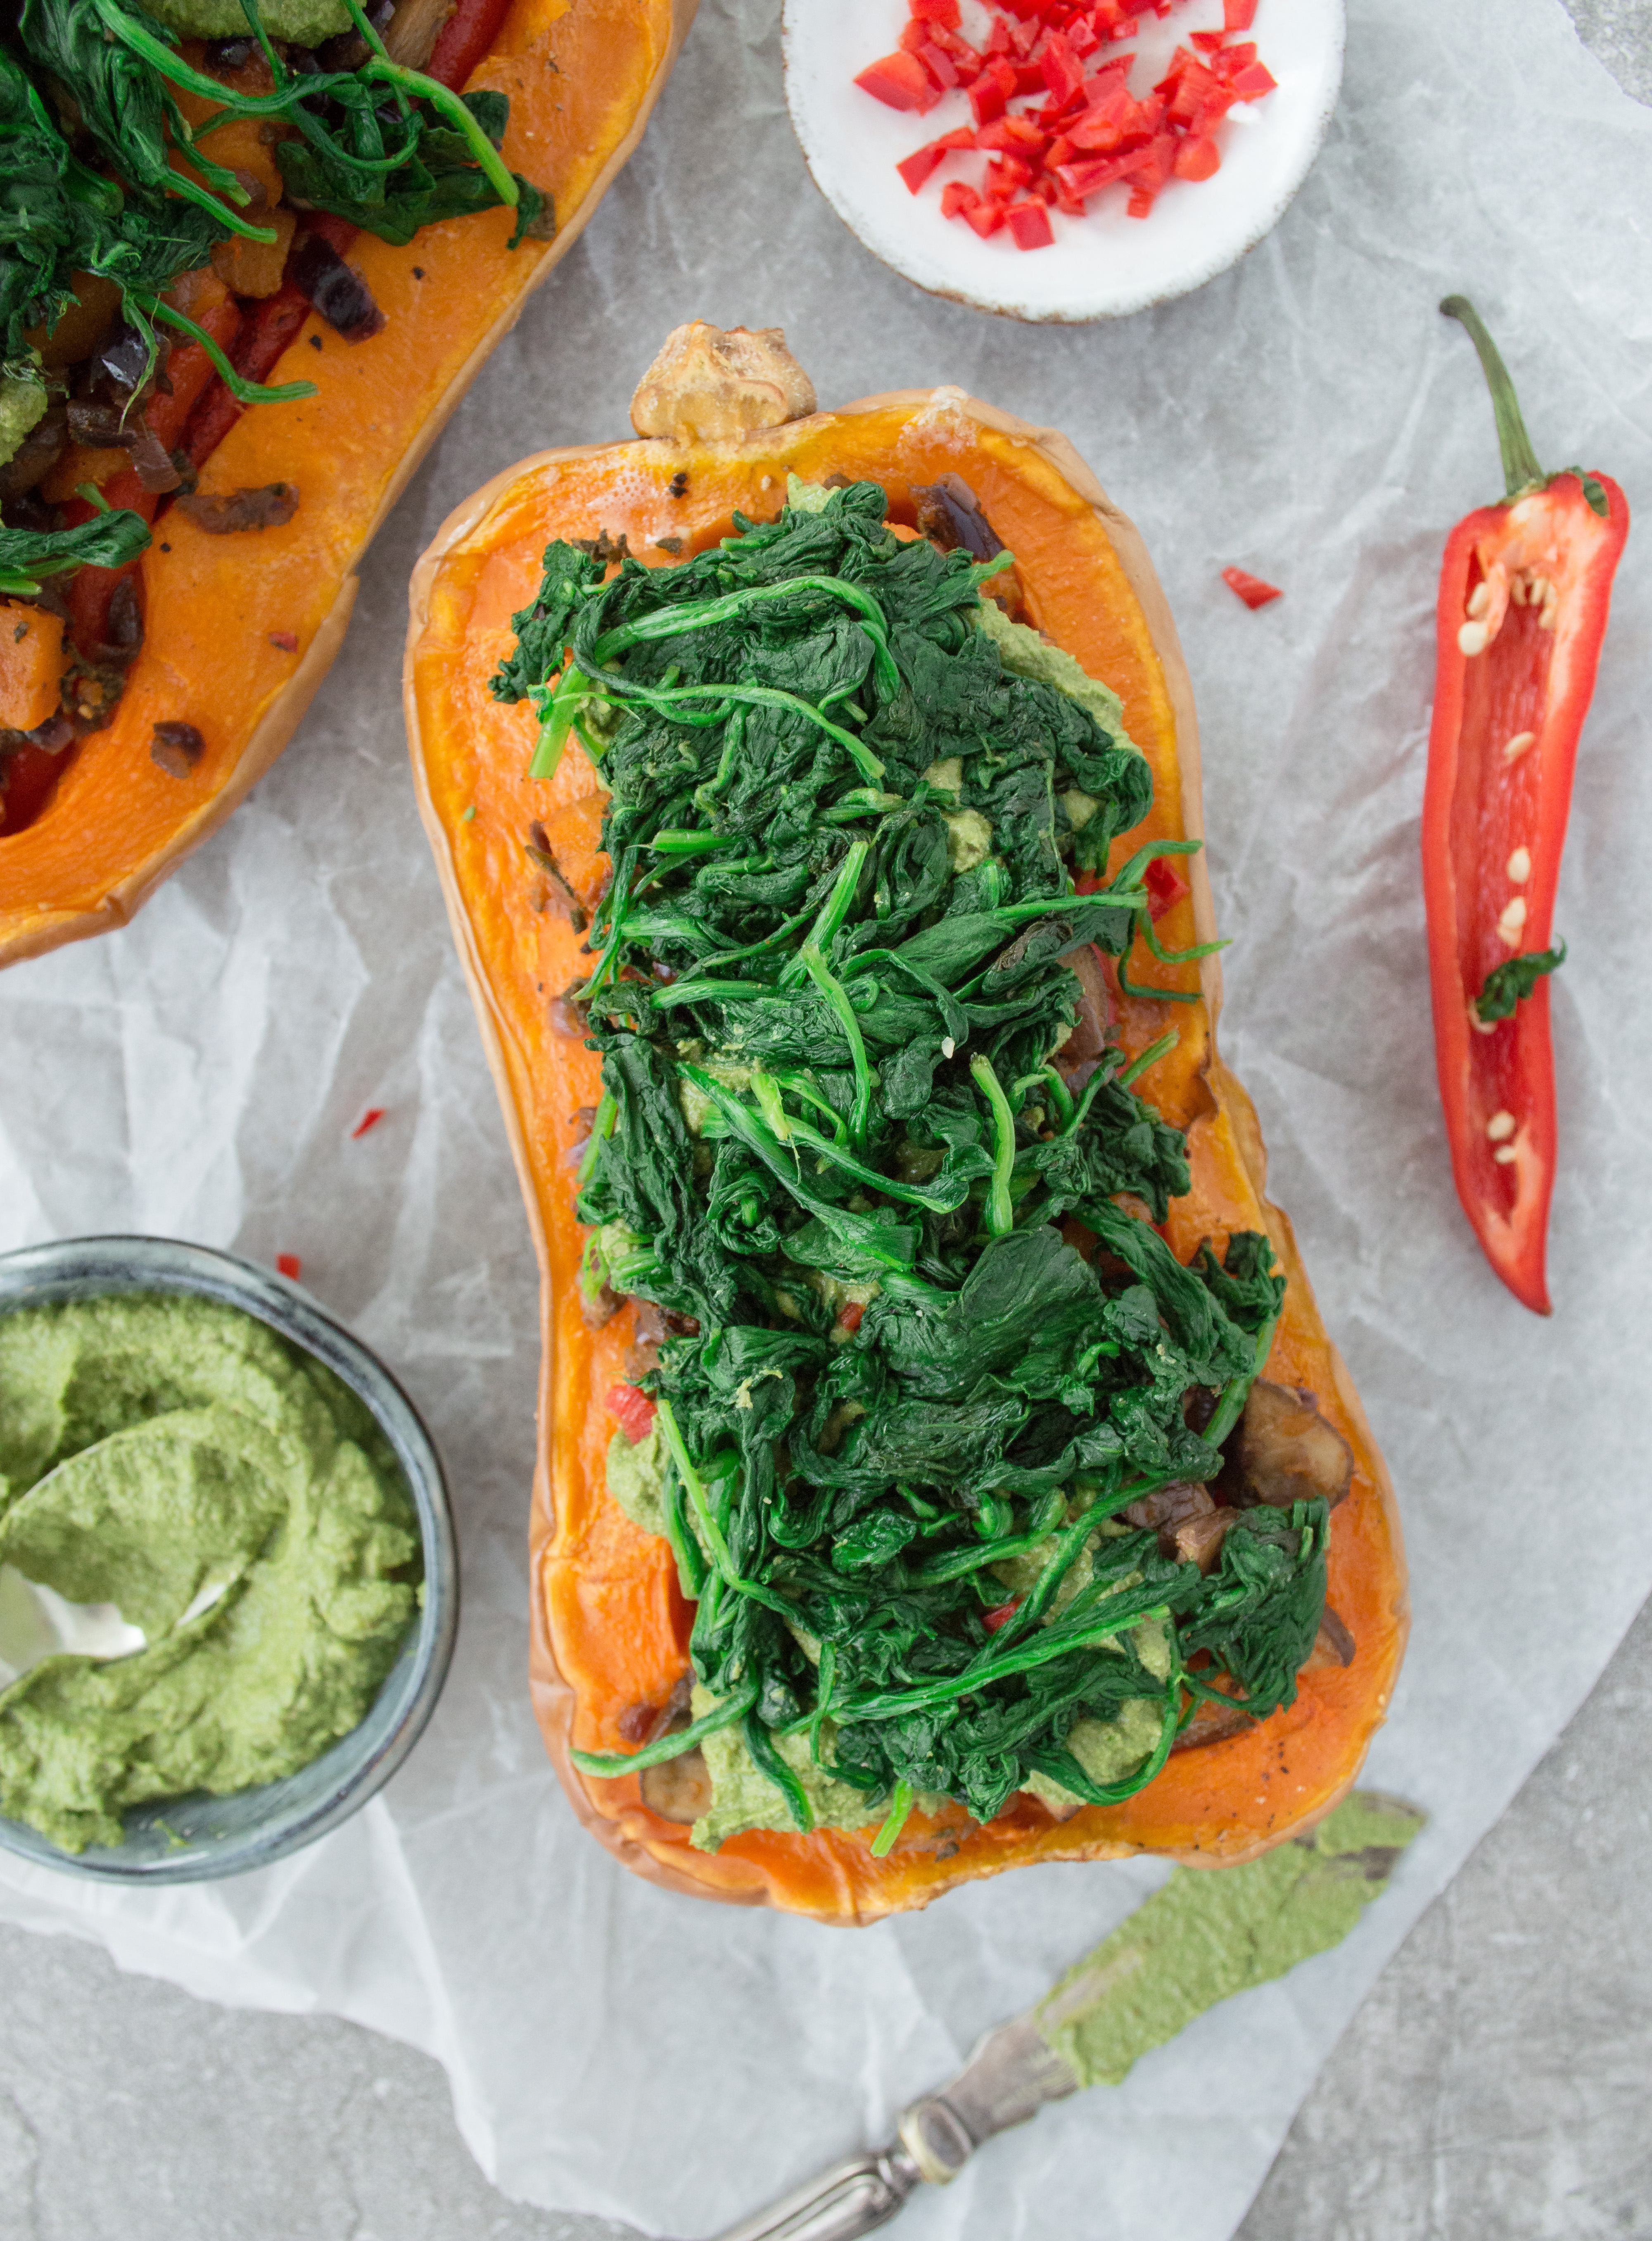 Butternut squash halves stuffed with spinach and vegetables